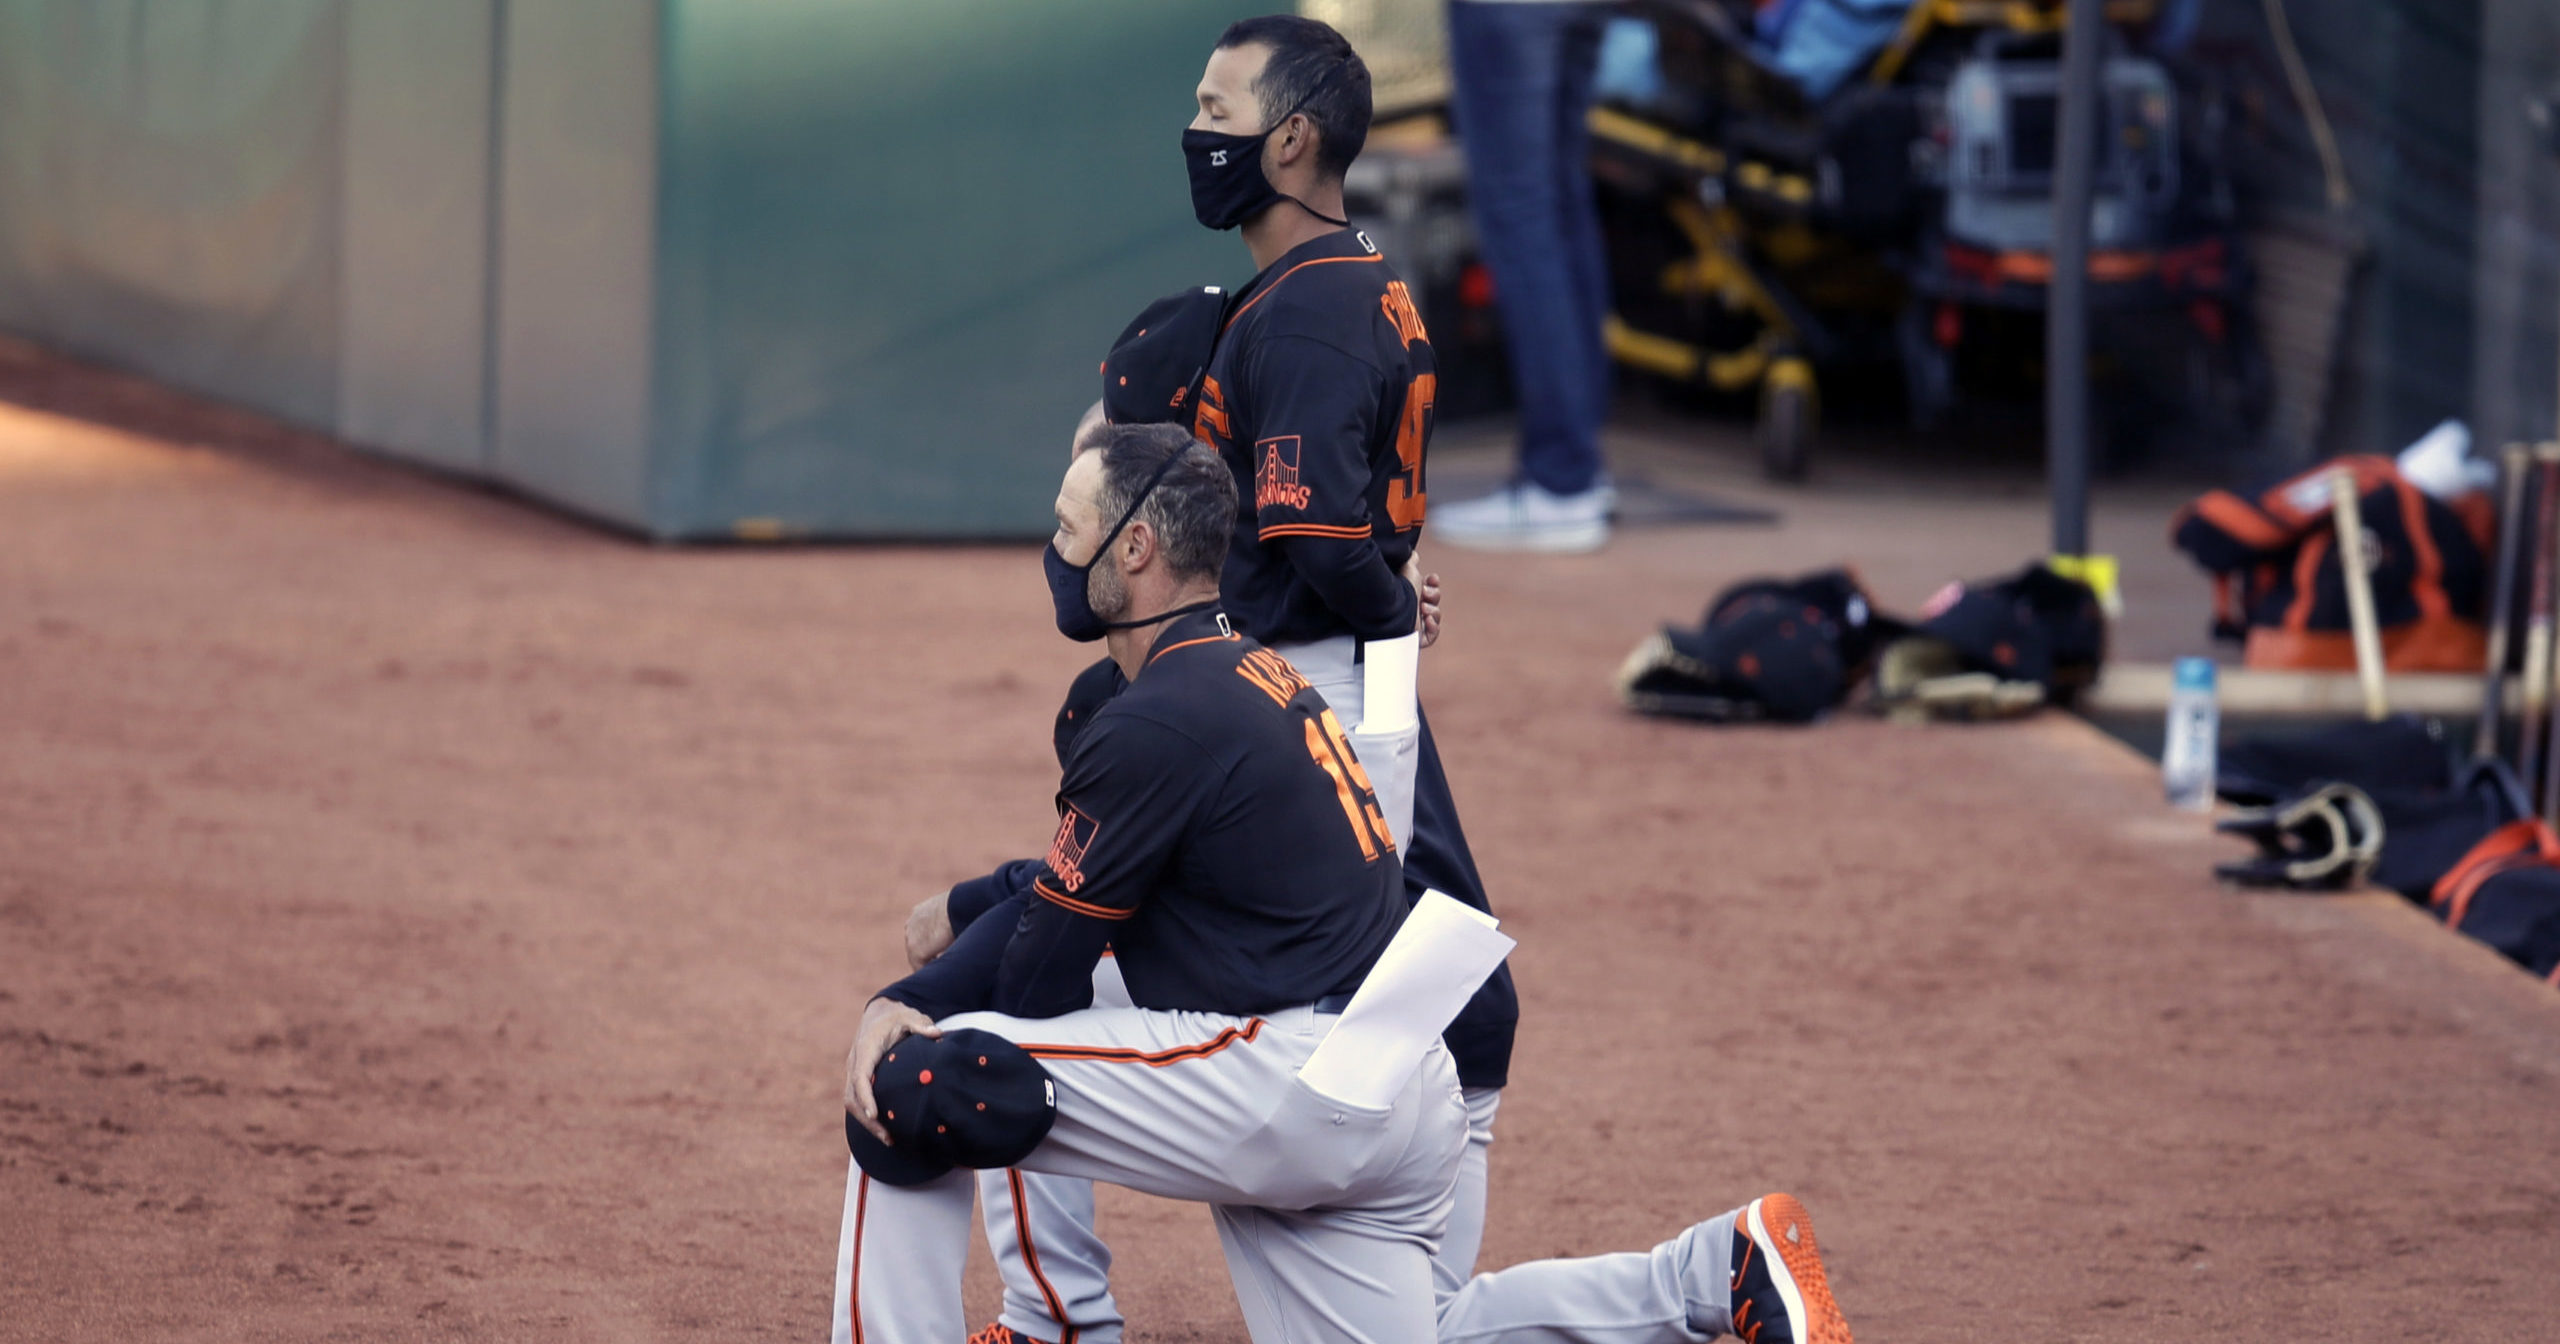 San Francisco Giants manager Gabe Kapler kneels during the national anthem prior to an exhibition baseball game against the Oakland Athletics on July 20, 2020, in Oakland, California.